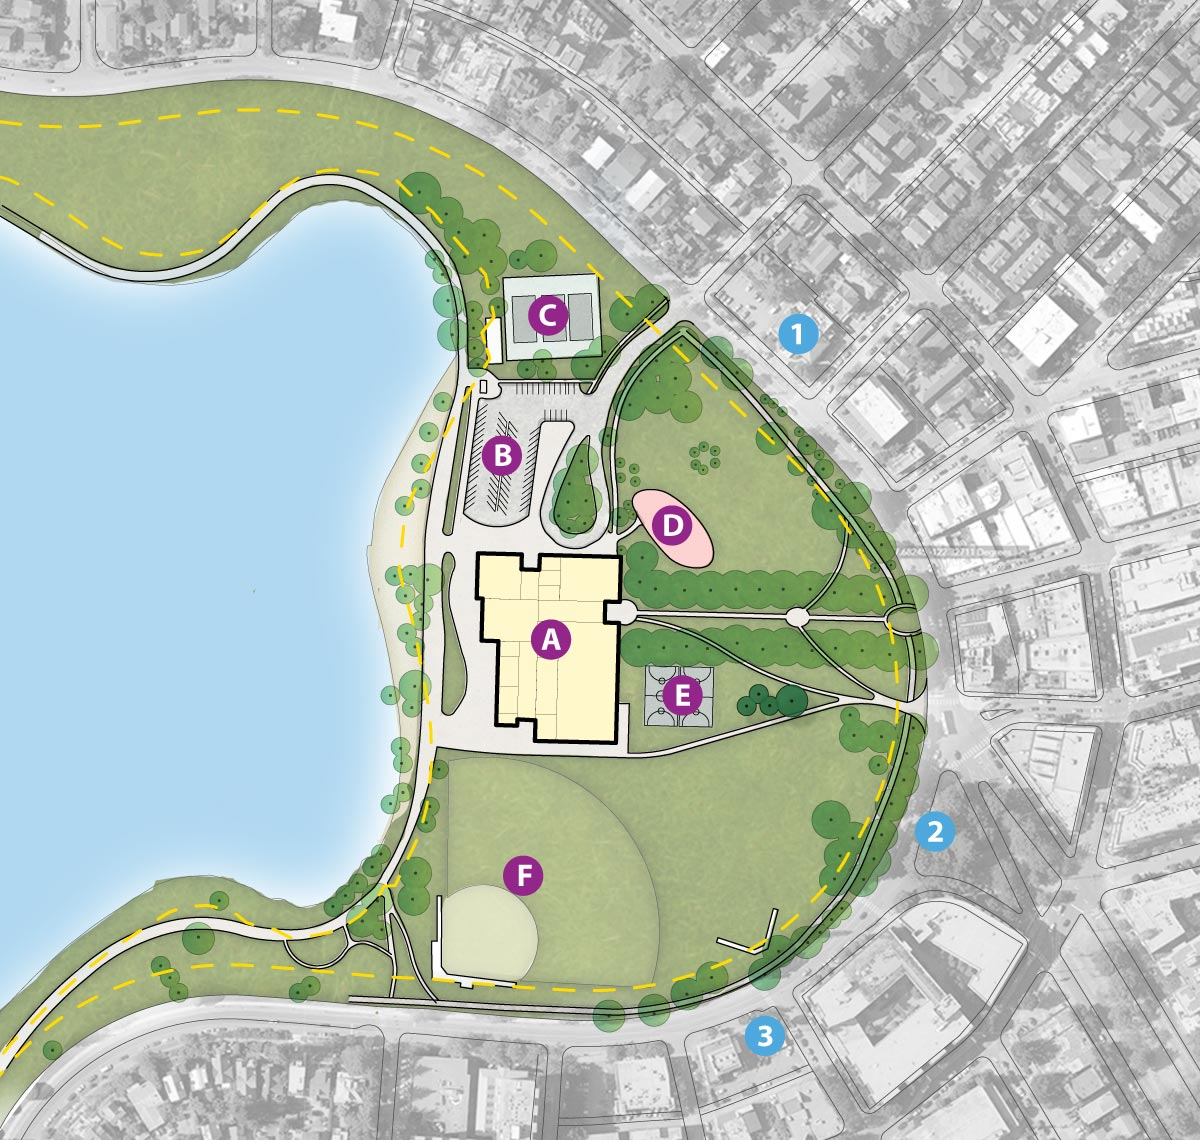 A map showing the Park Pavilion site at the northwest side of Green Lake Park.